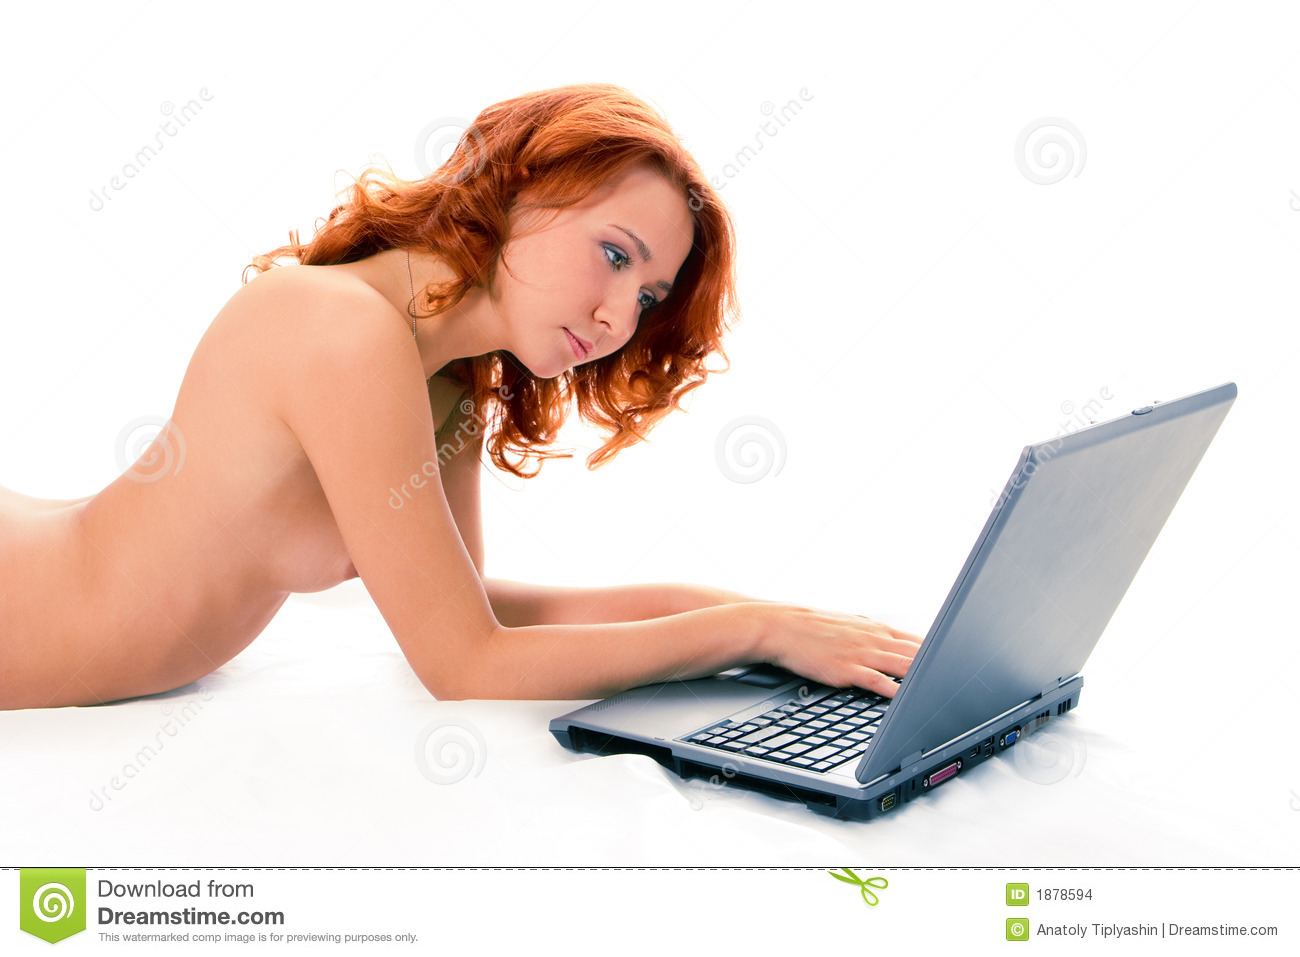 Simply nude girl with laptop